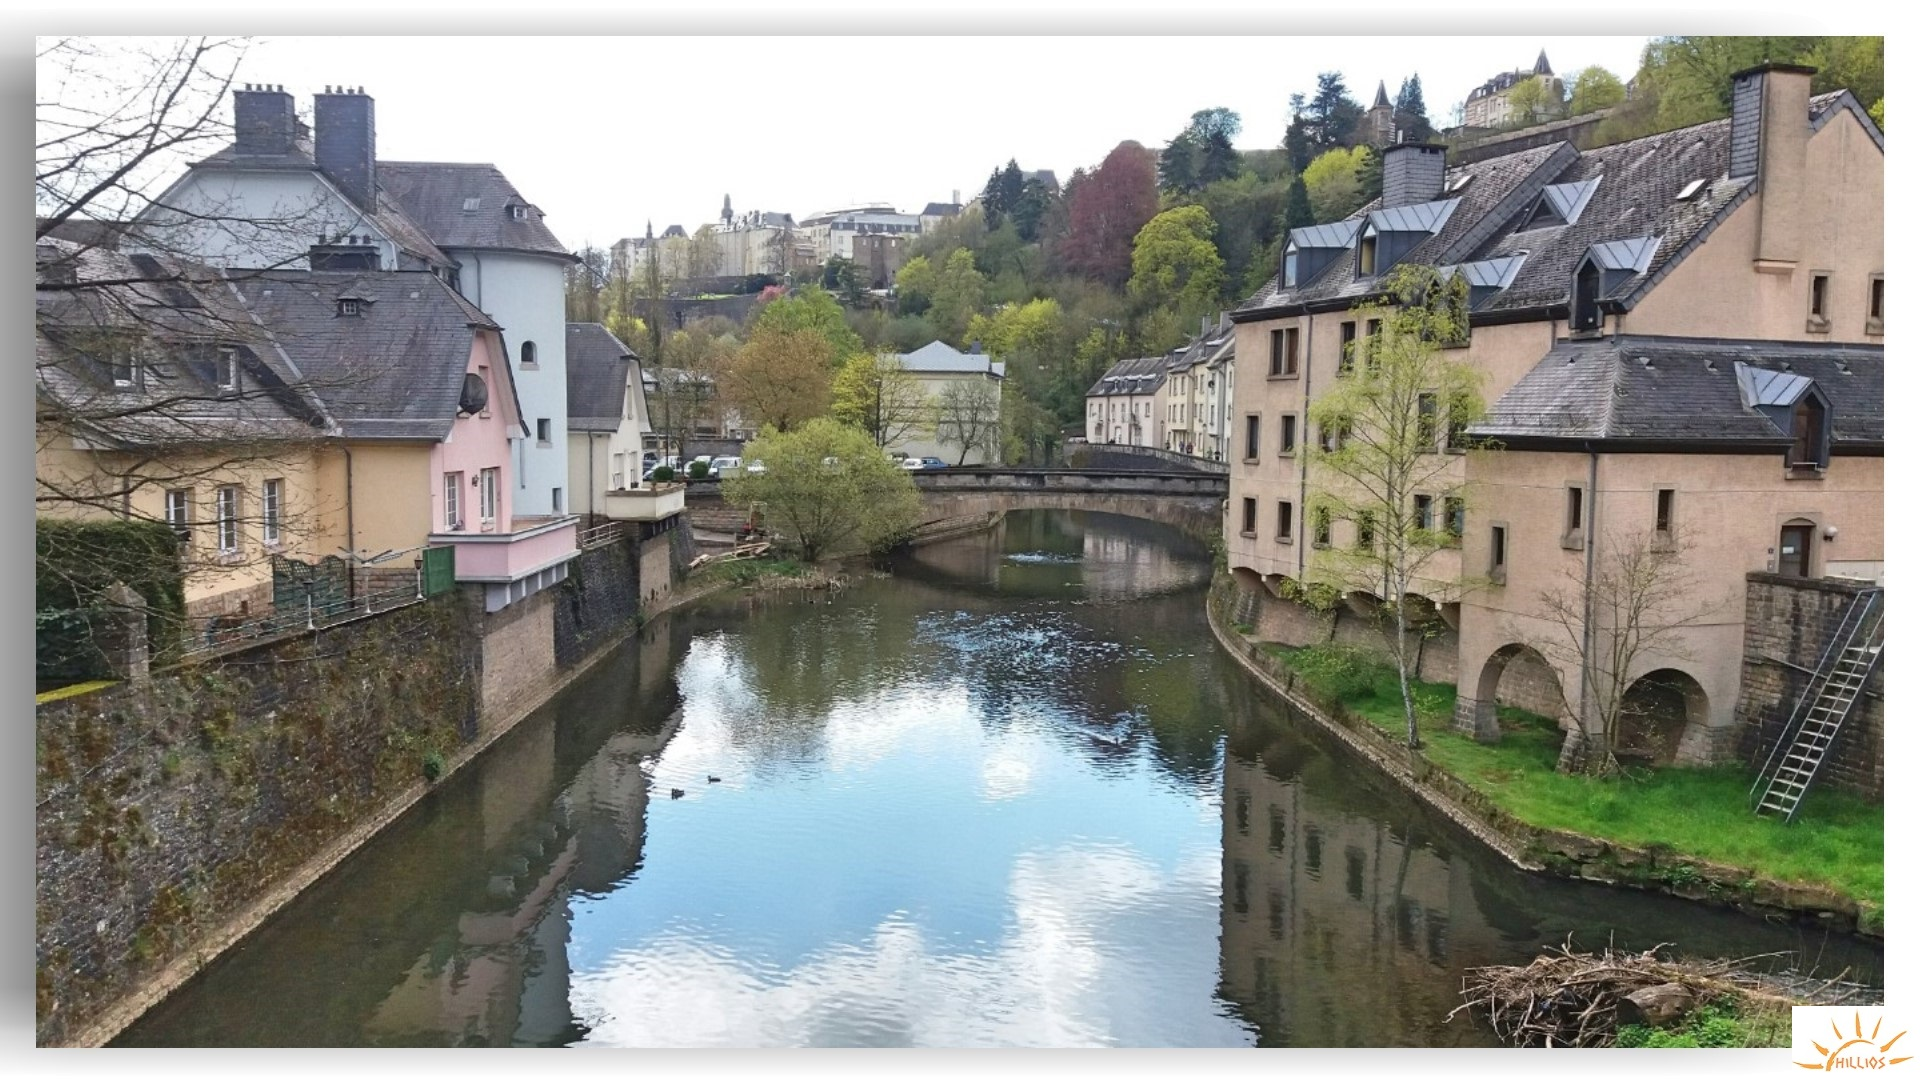 Luxembourg ville hillios blog voyage for Piscine luxembourg ville